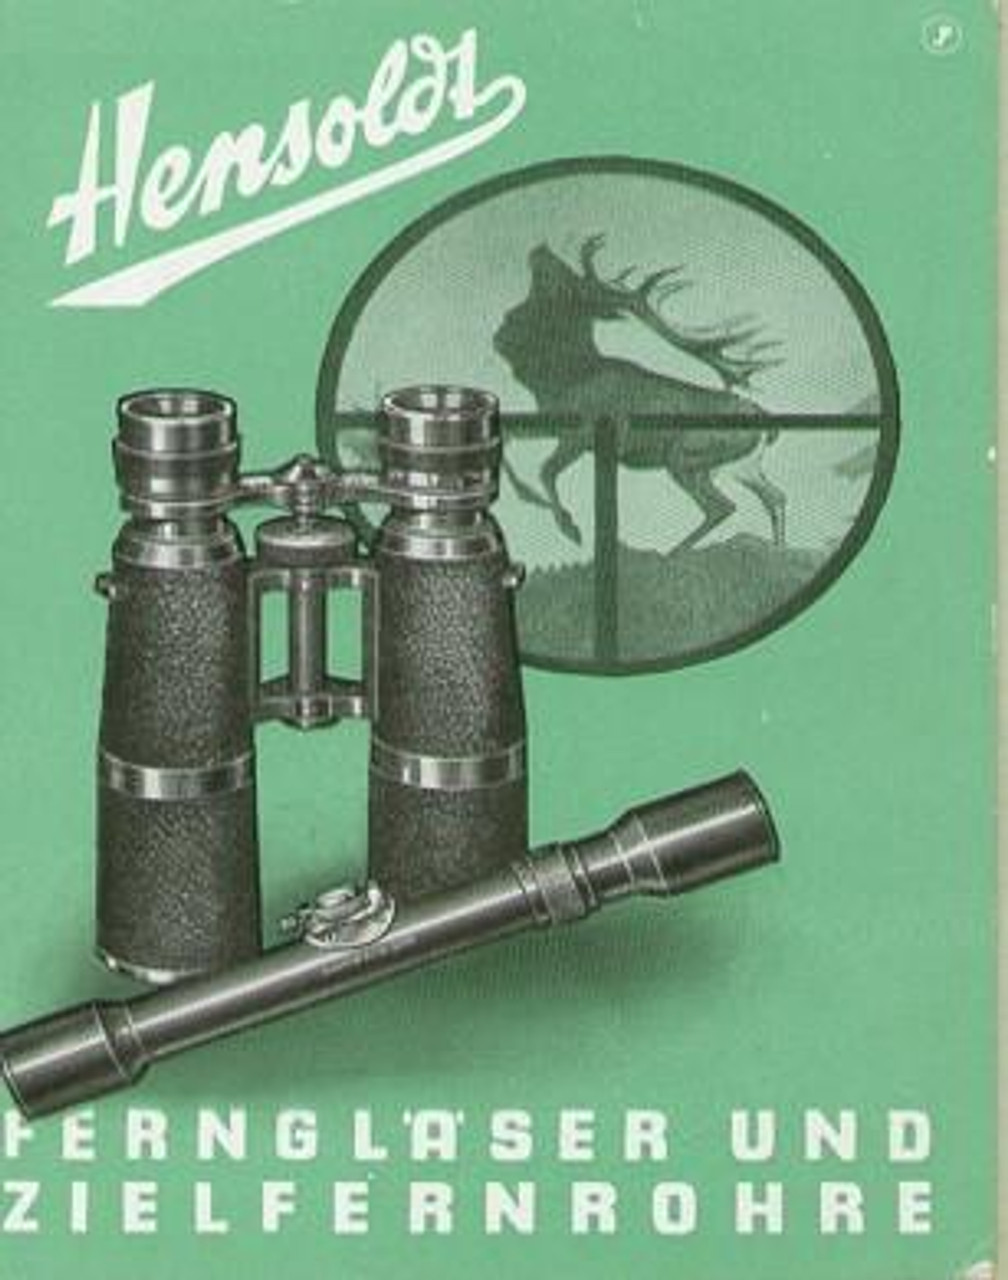 PRE WWII GERMAN OPTIC LITERATURE - M1067